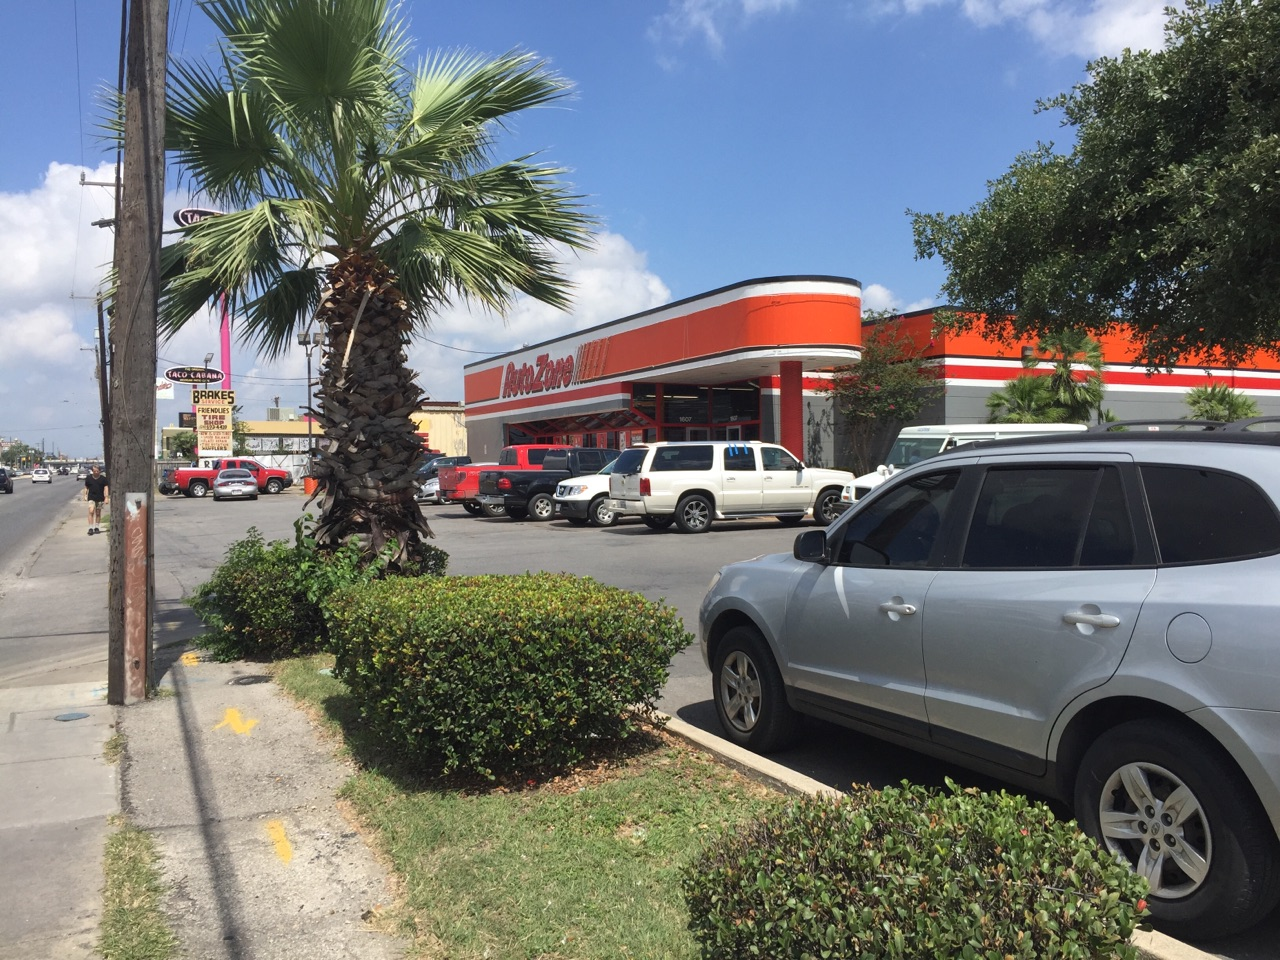 Autozone on Southwest Military Drive in San Antonio, Texas. (Photo: Sinclair Broadcast Group)